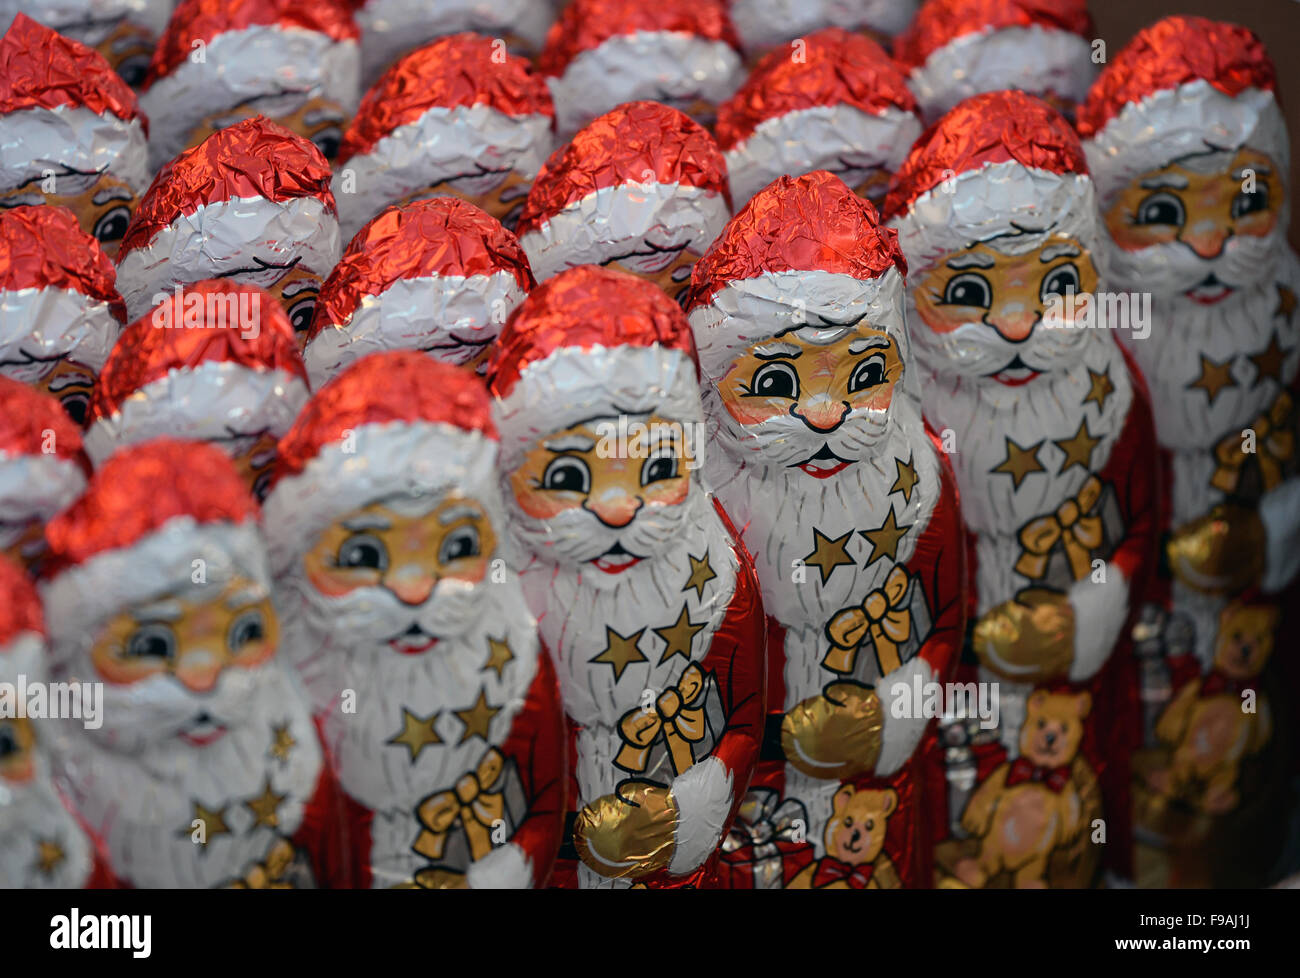 Kleinmachnow, Germany. 6th Dec, 2015. Small Santa Clauses made of chocolate stand in rows on display to be given - Stock Image